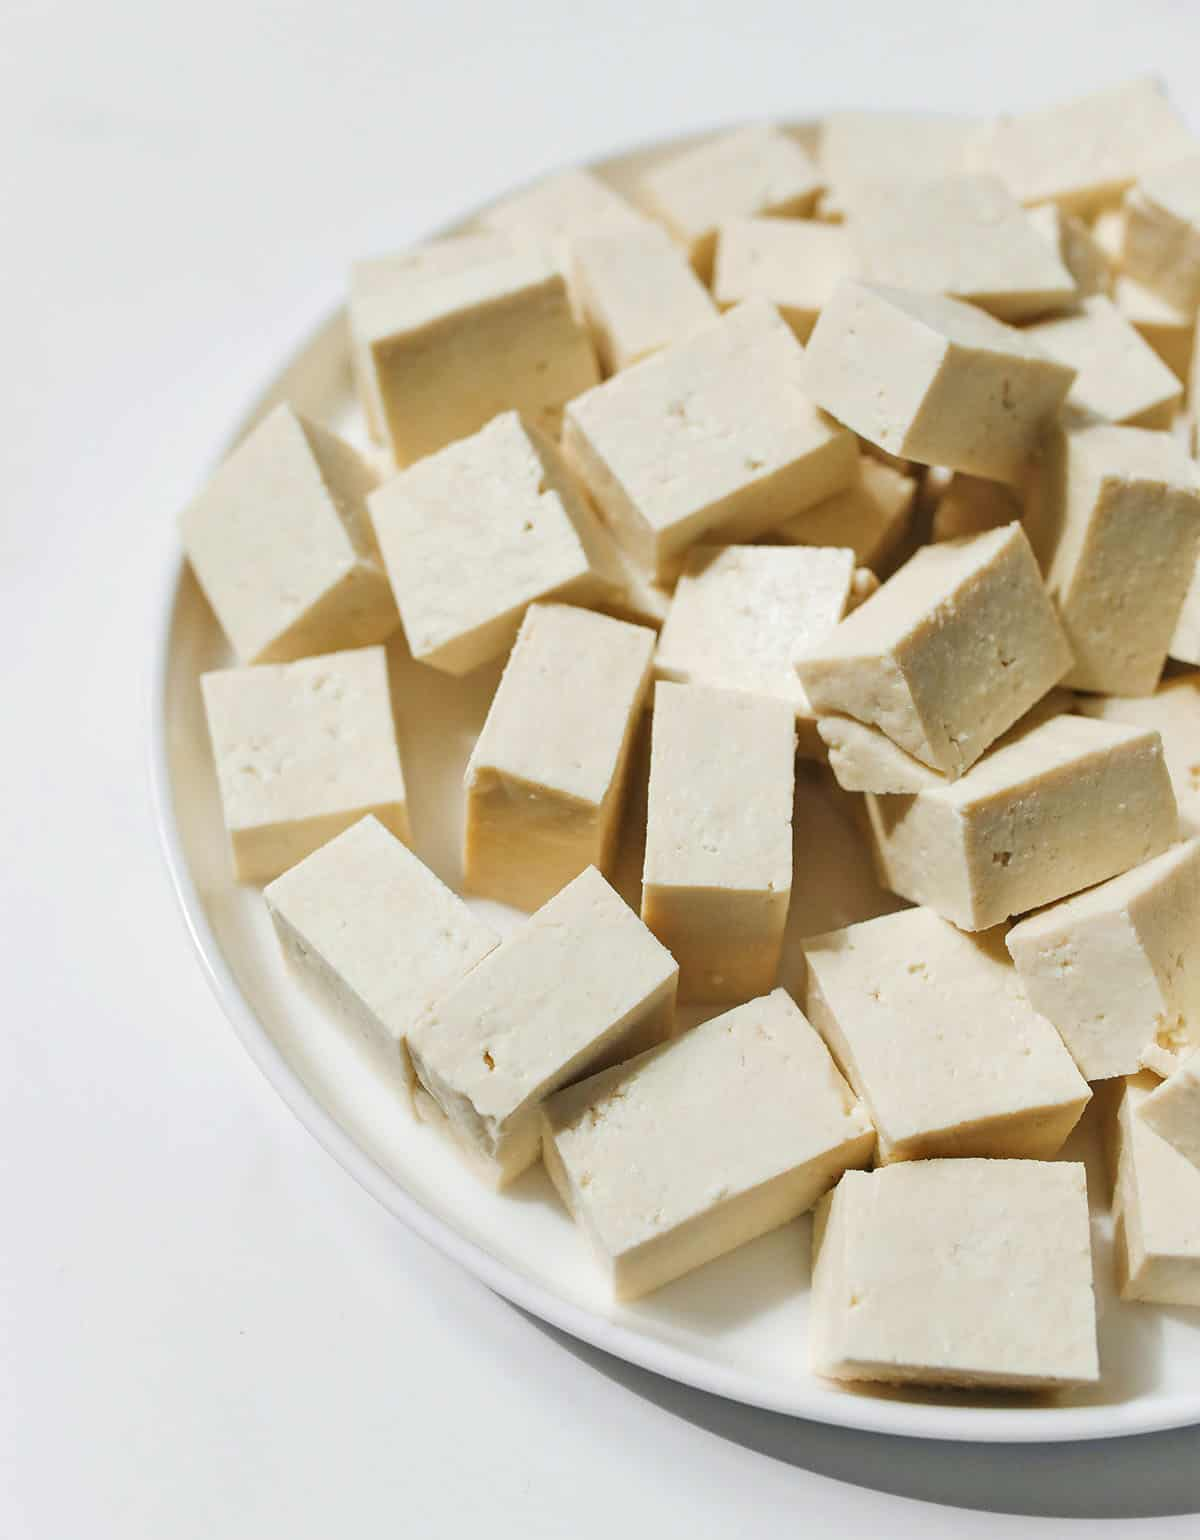 cubes of tofu on a white plate on a white background